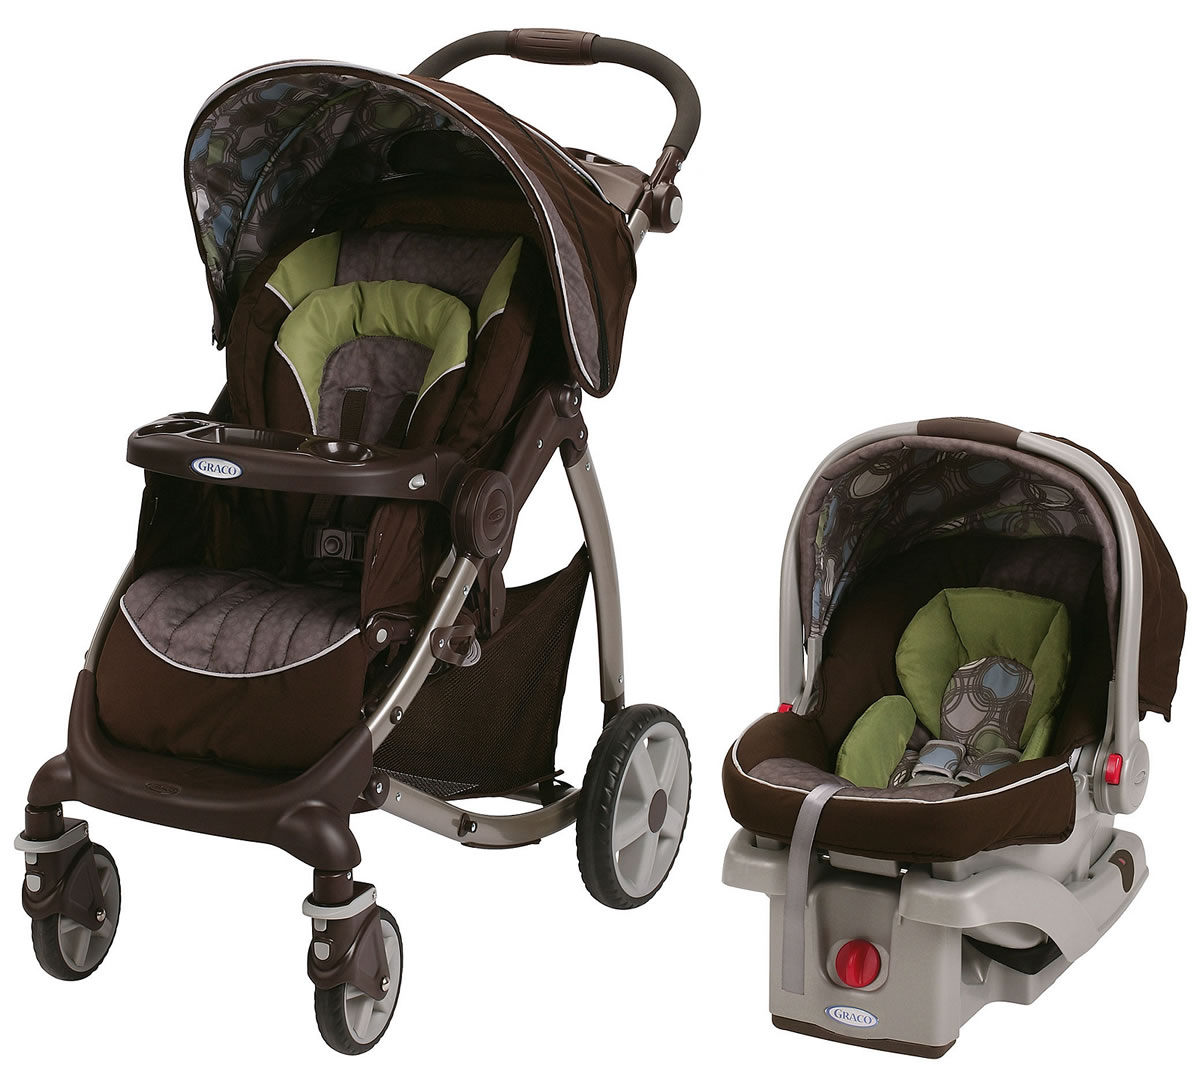 Graco Stylus Click Connect Travel System - Roundabout